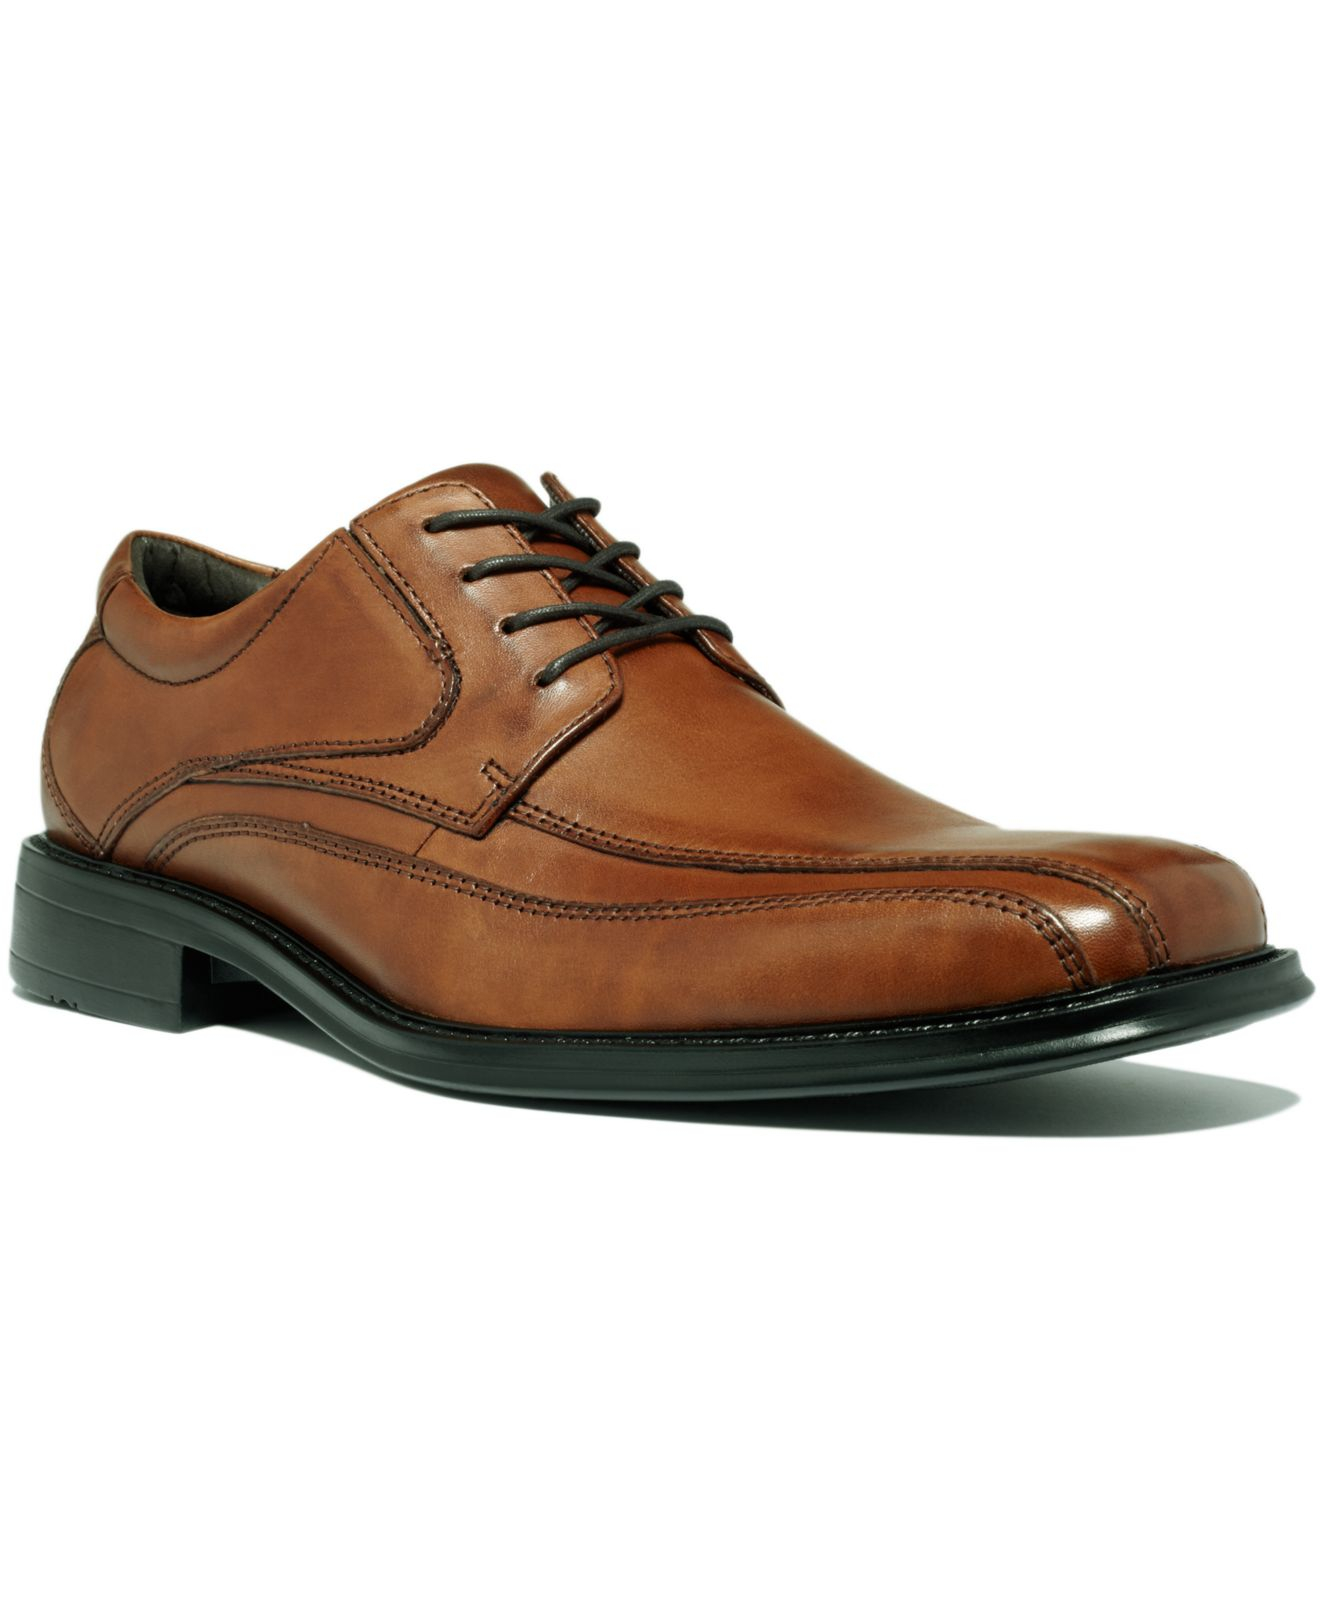 Lyst Dockers Shoes Endow Bike Toe Oxfords In Brown For Men